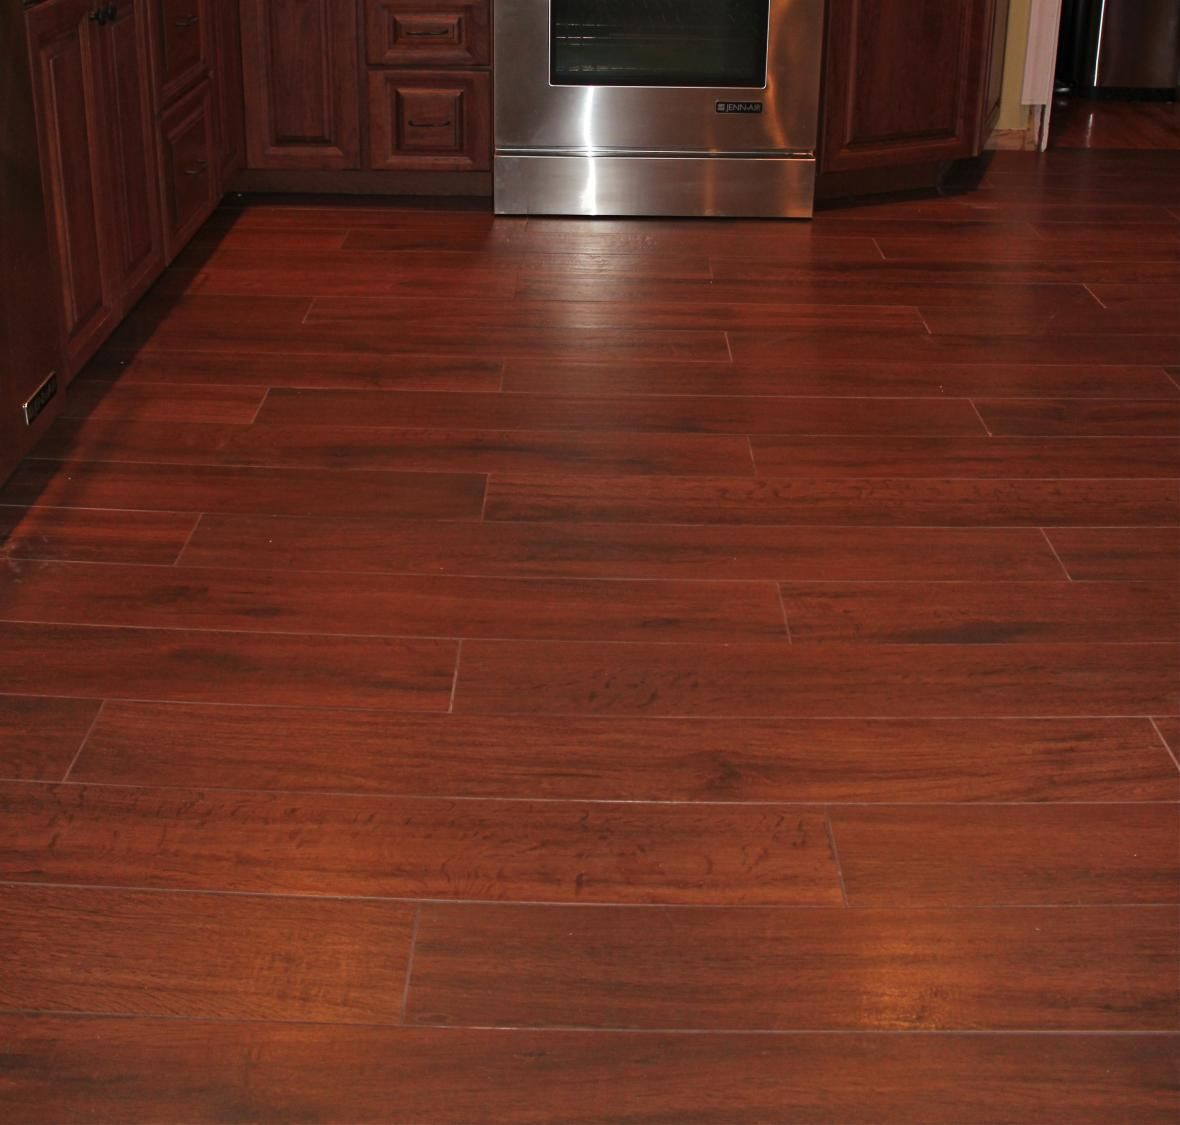 Ceramic Tile Floors For Kitchens Wood Ceramic Tile Would Minimise The Gap Between These Plank